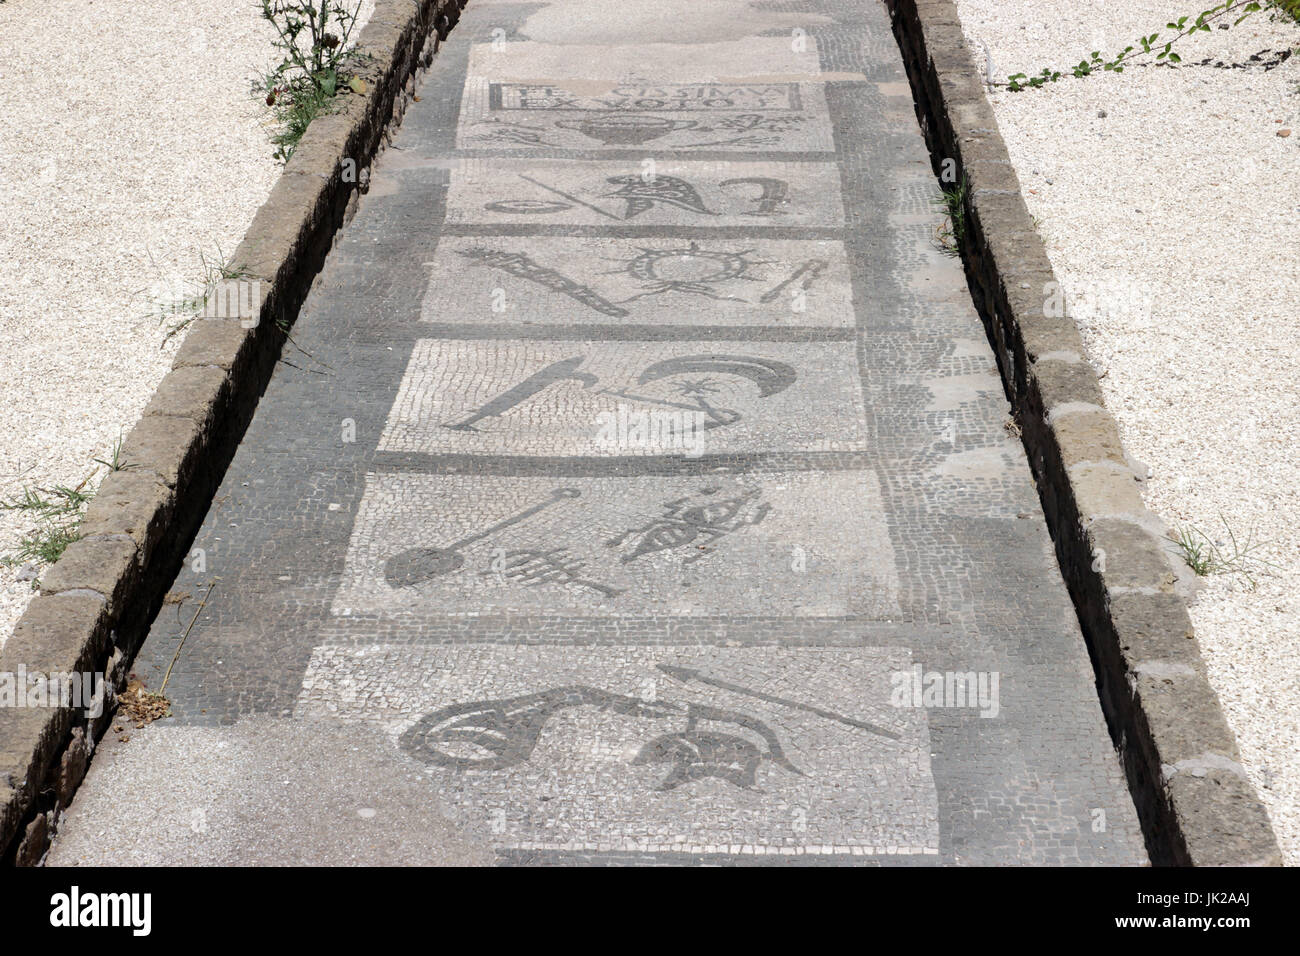 OSTIA ANTICA, ITALY -  JULY  2, 2017: Mithraeum steps to enlightenment an ancient Roman Mosaic Floor in a Mithraic - Stock Image